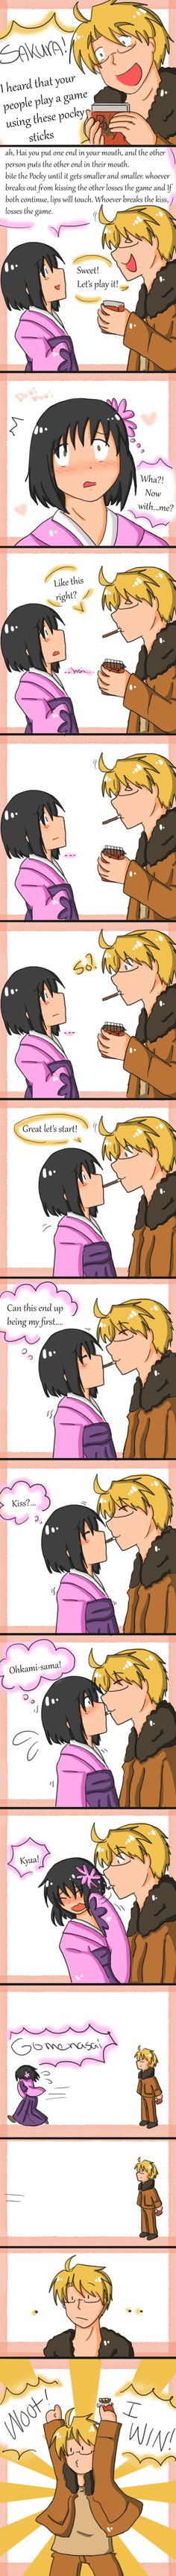 Pocky Game by SparxPunx.deviantart.com on @deviantART I dont usually pin ones of the pocky game but this was just too funny not to XD